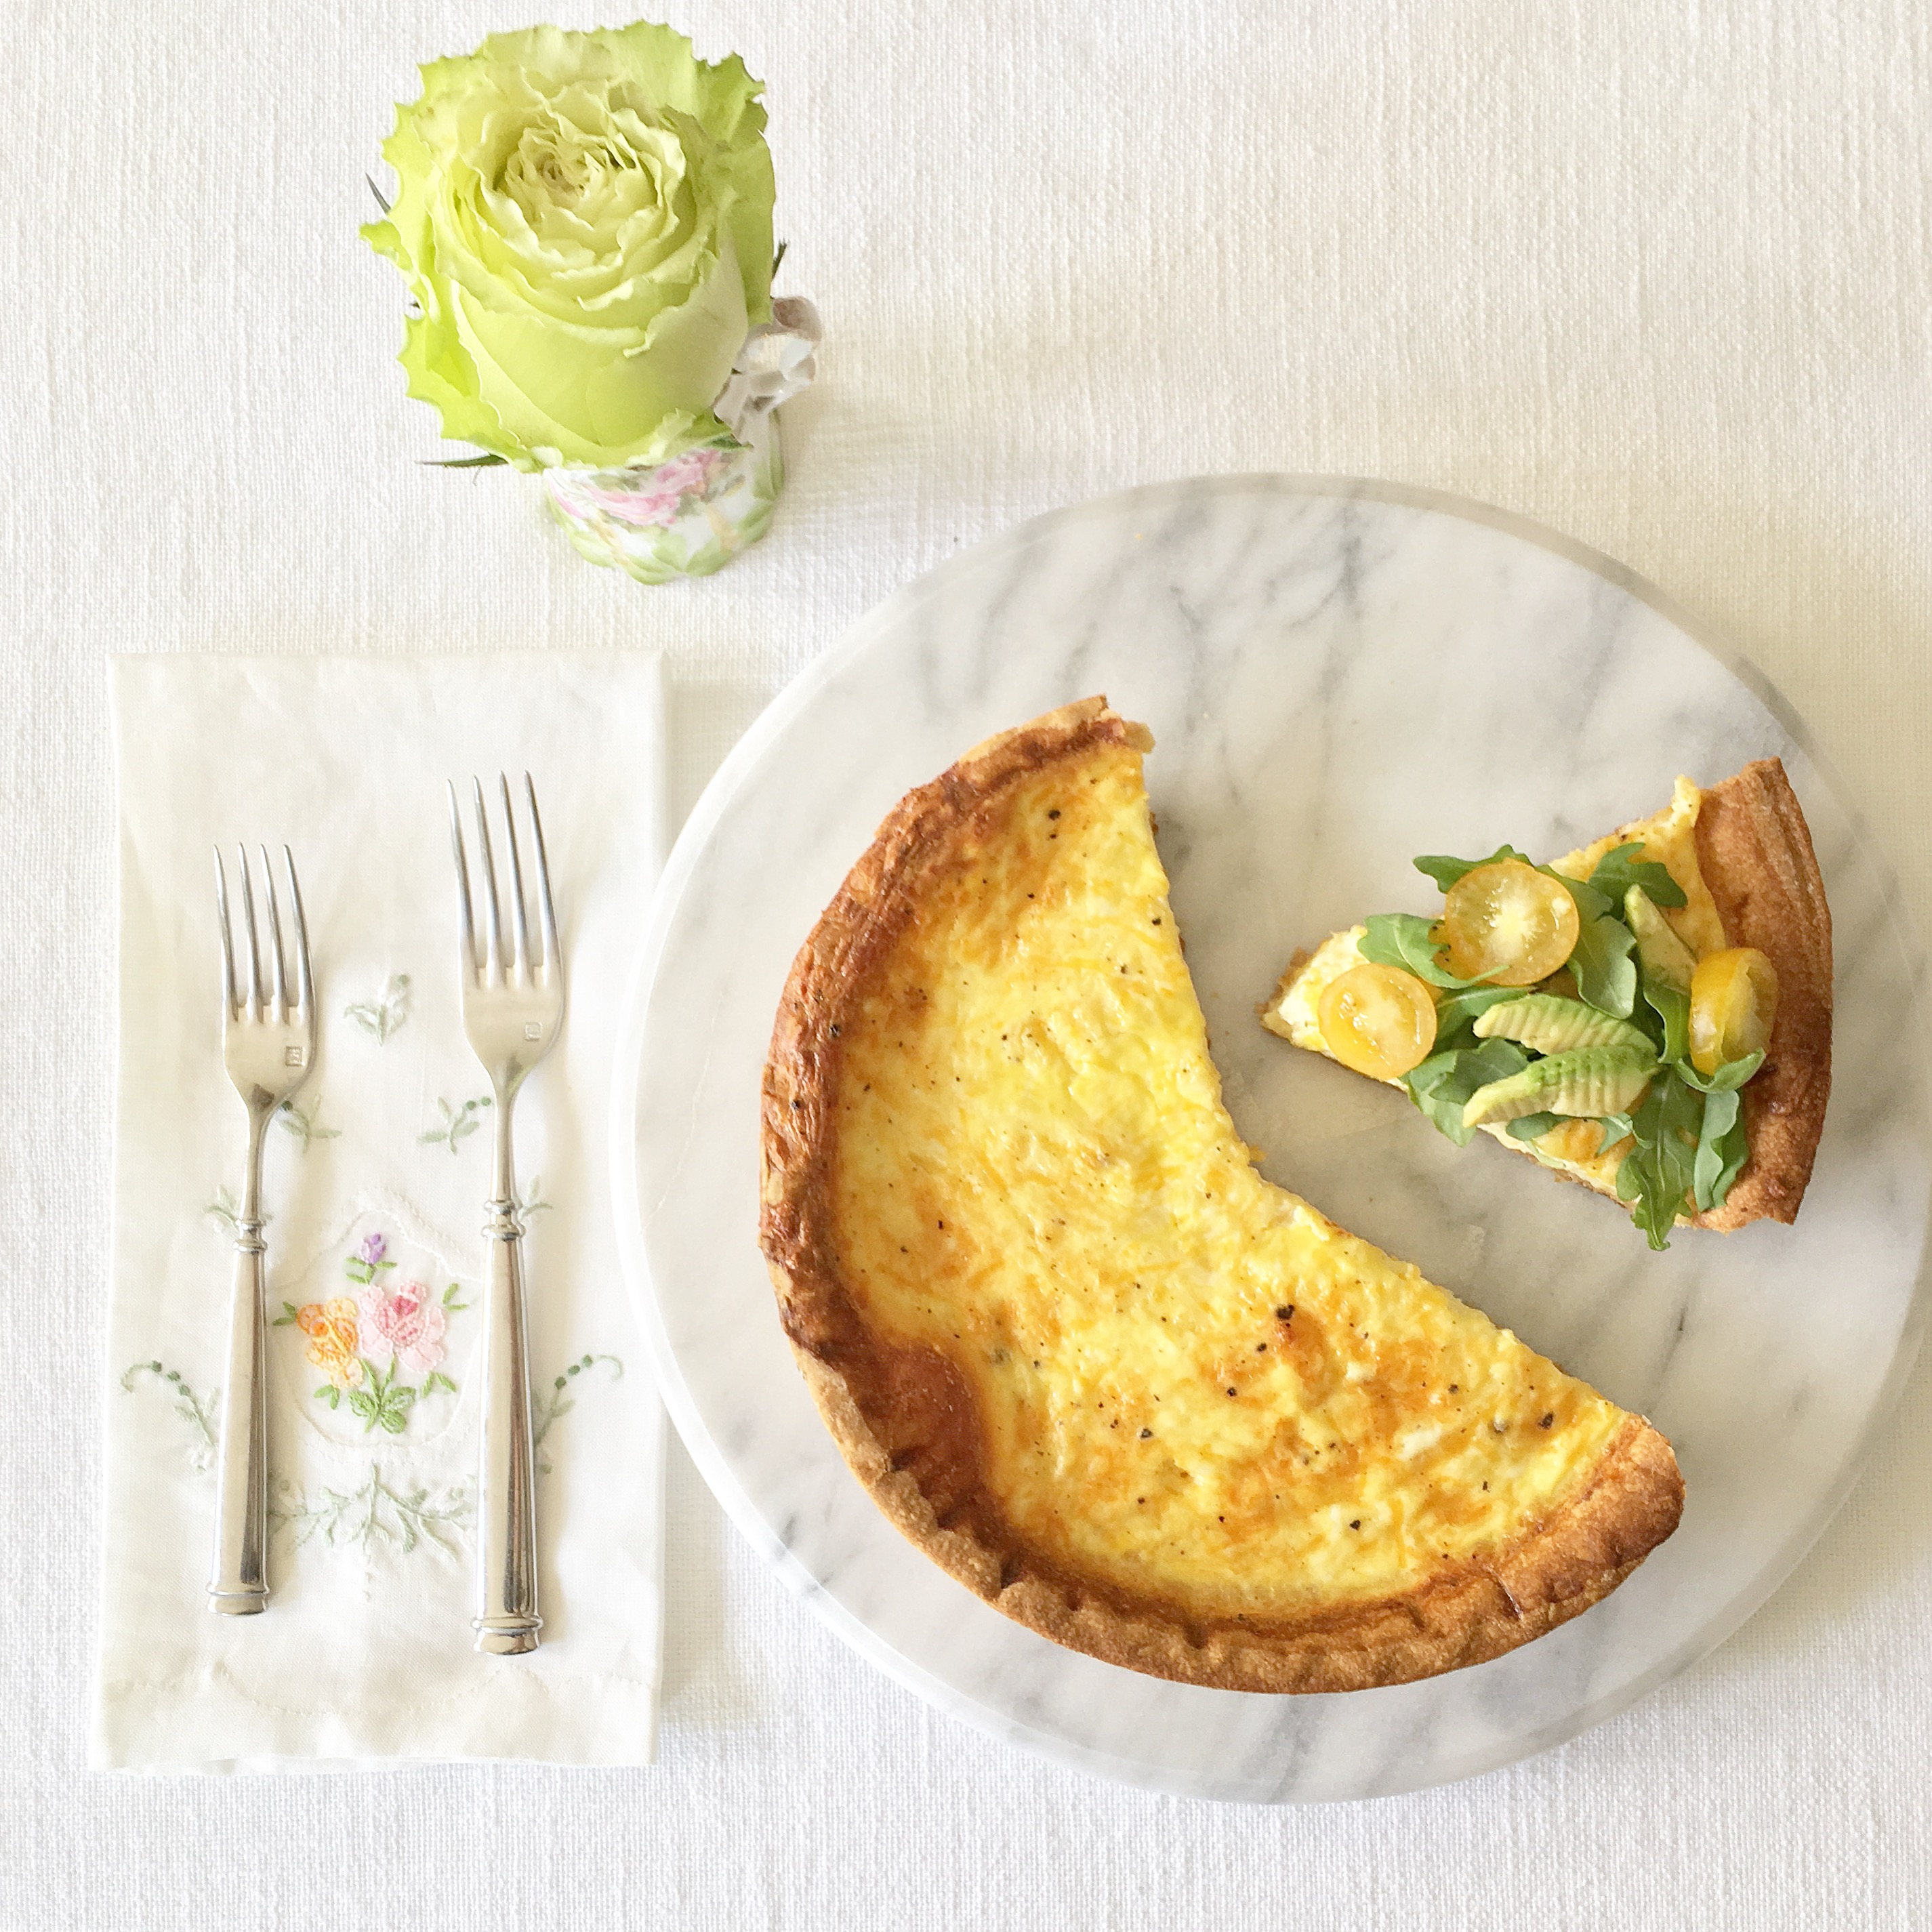 New kdhamptons recipe chic easy quiche lorraine for Quiche not setting